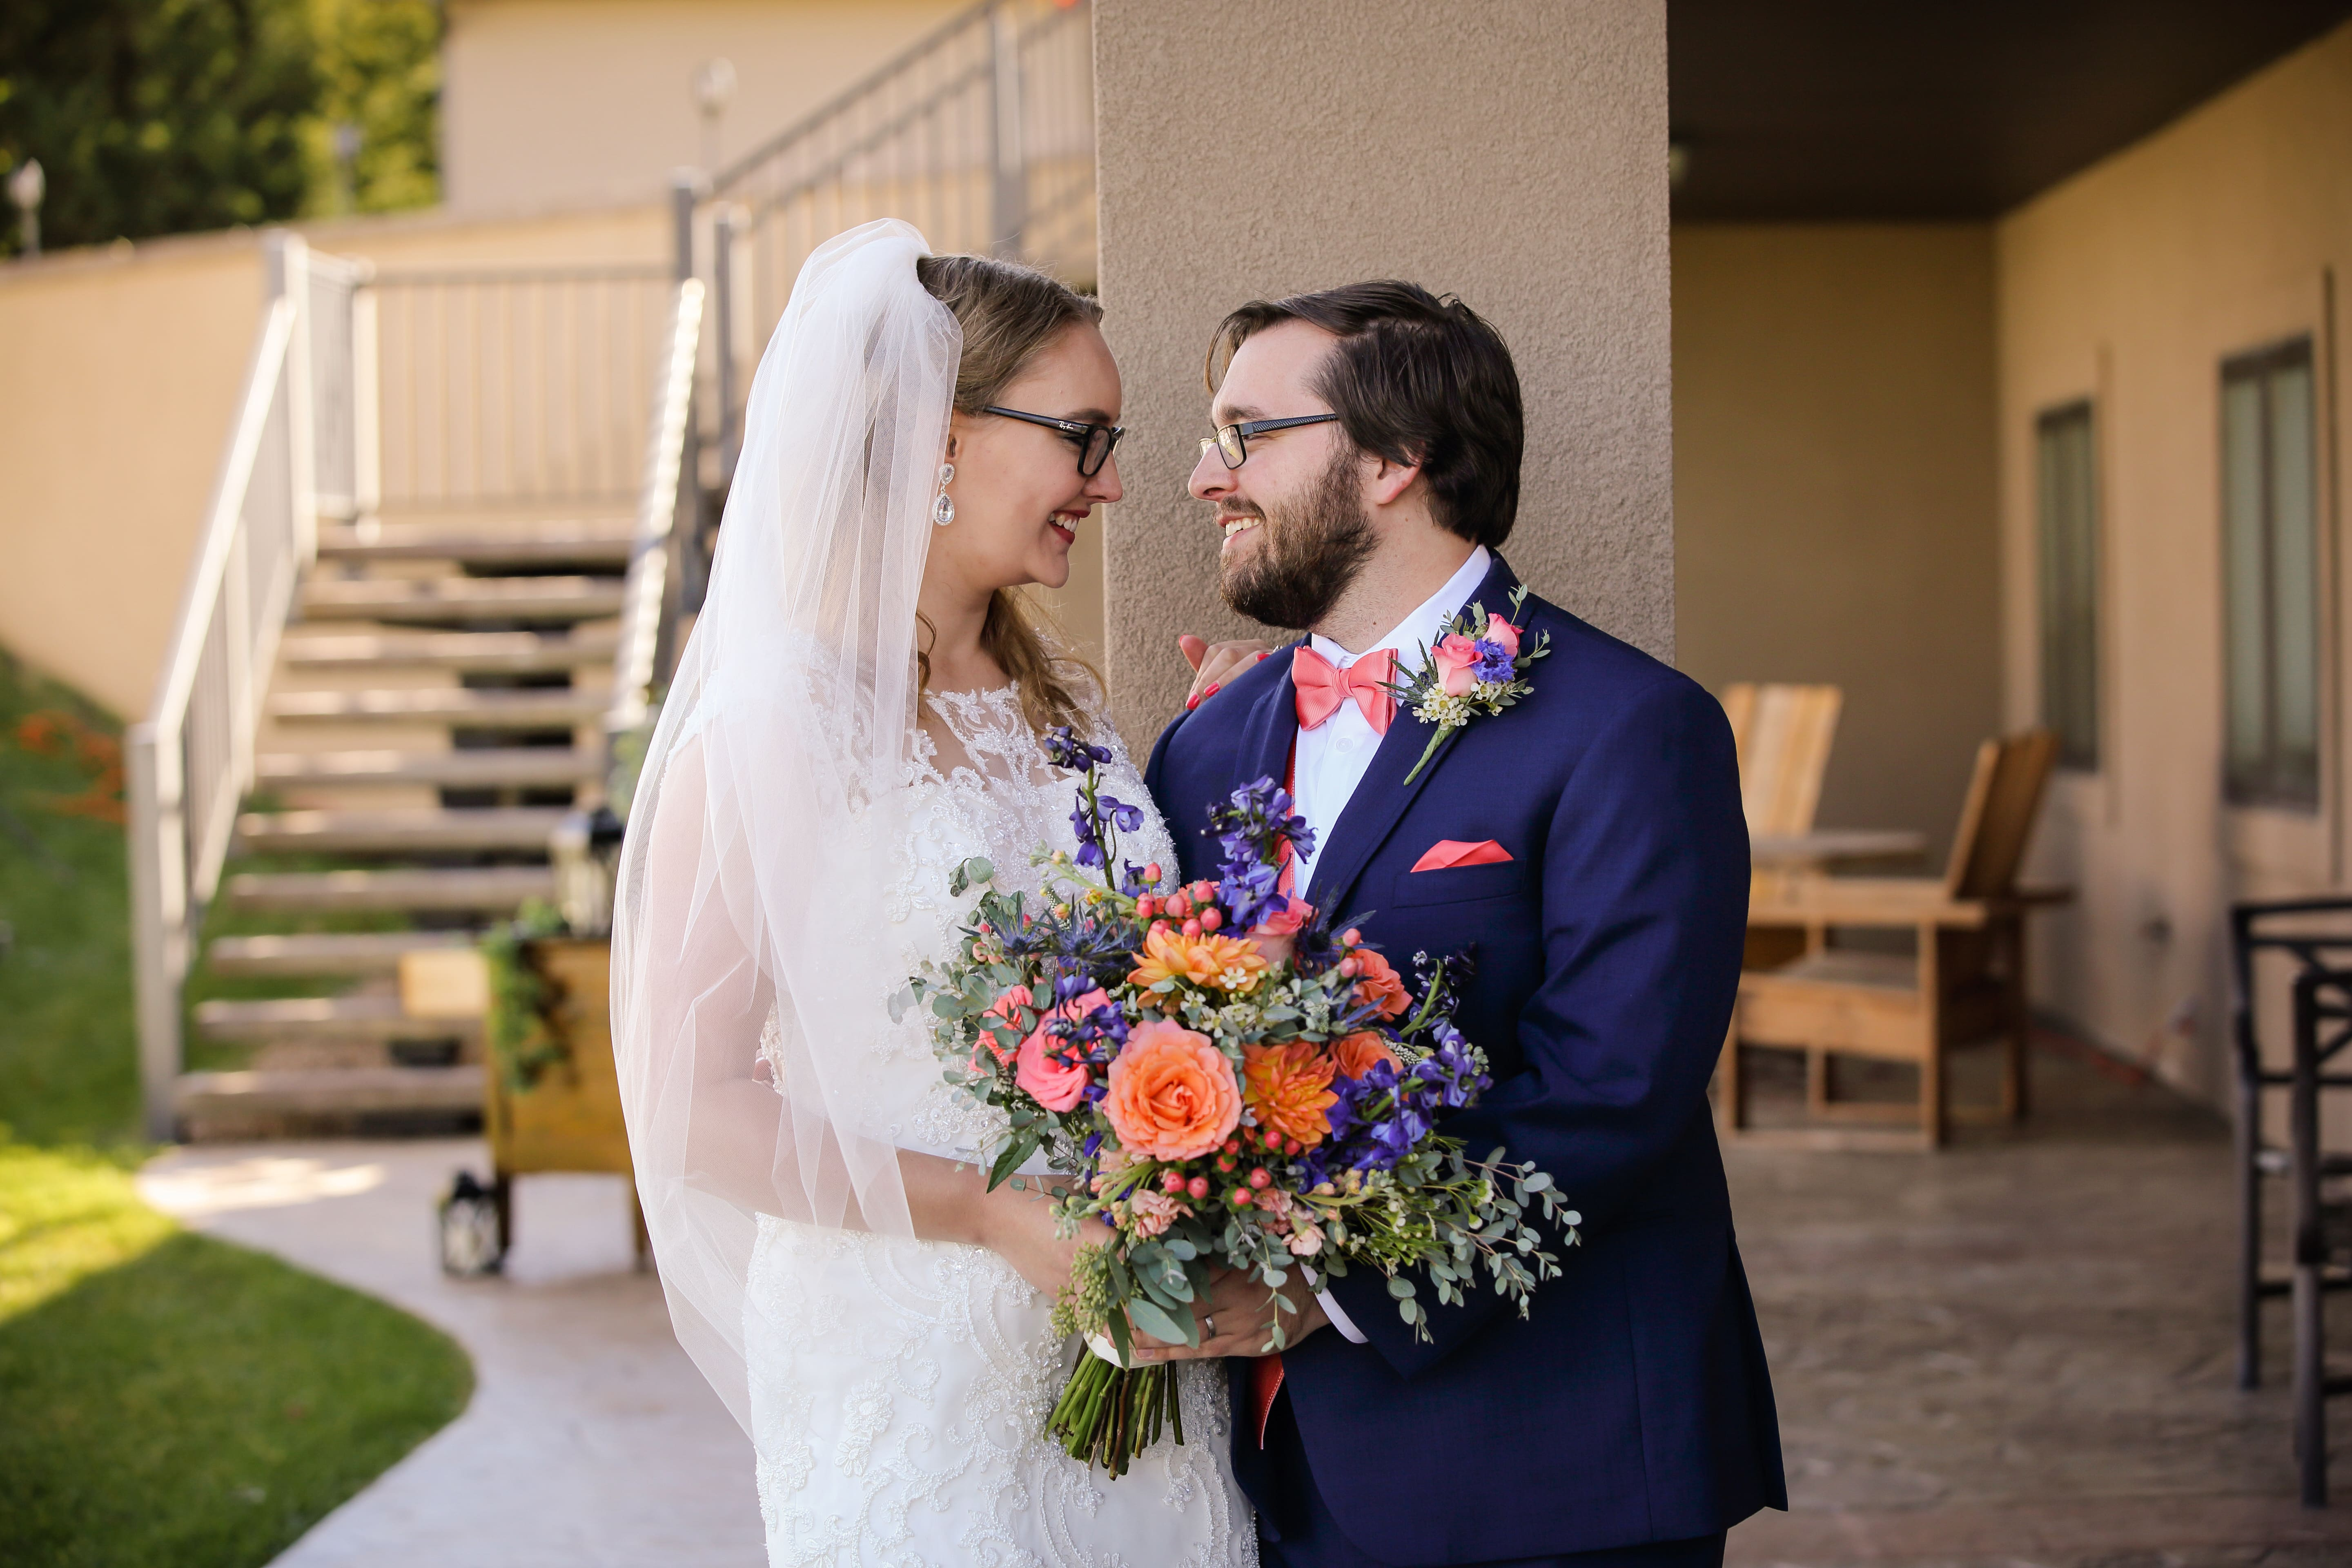 Cassey and Josh in their wedding finery